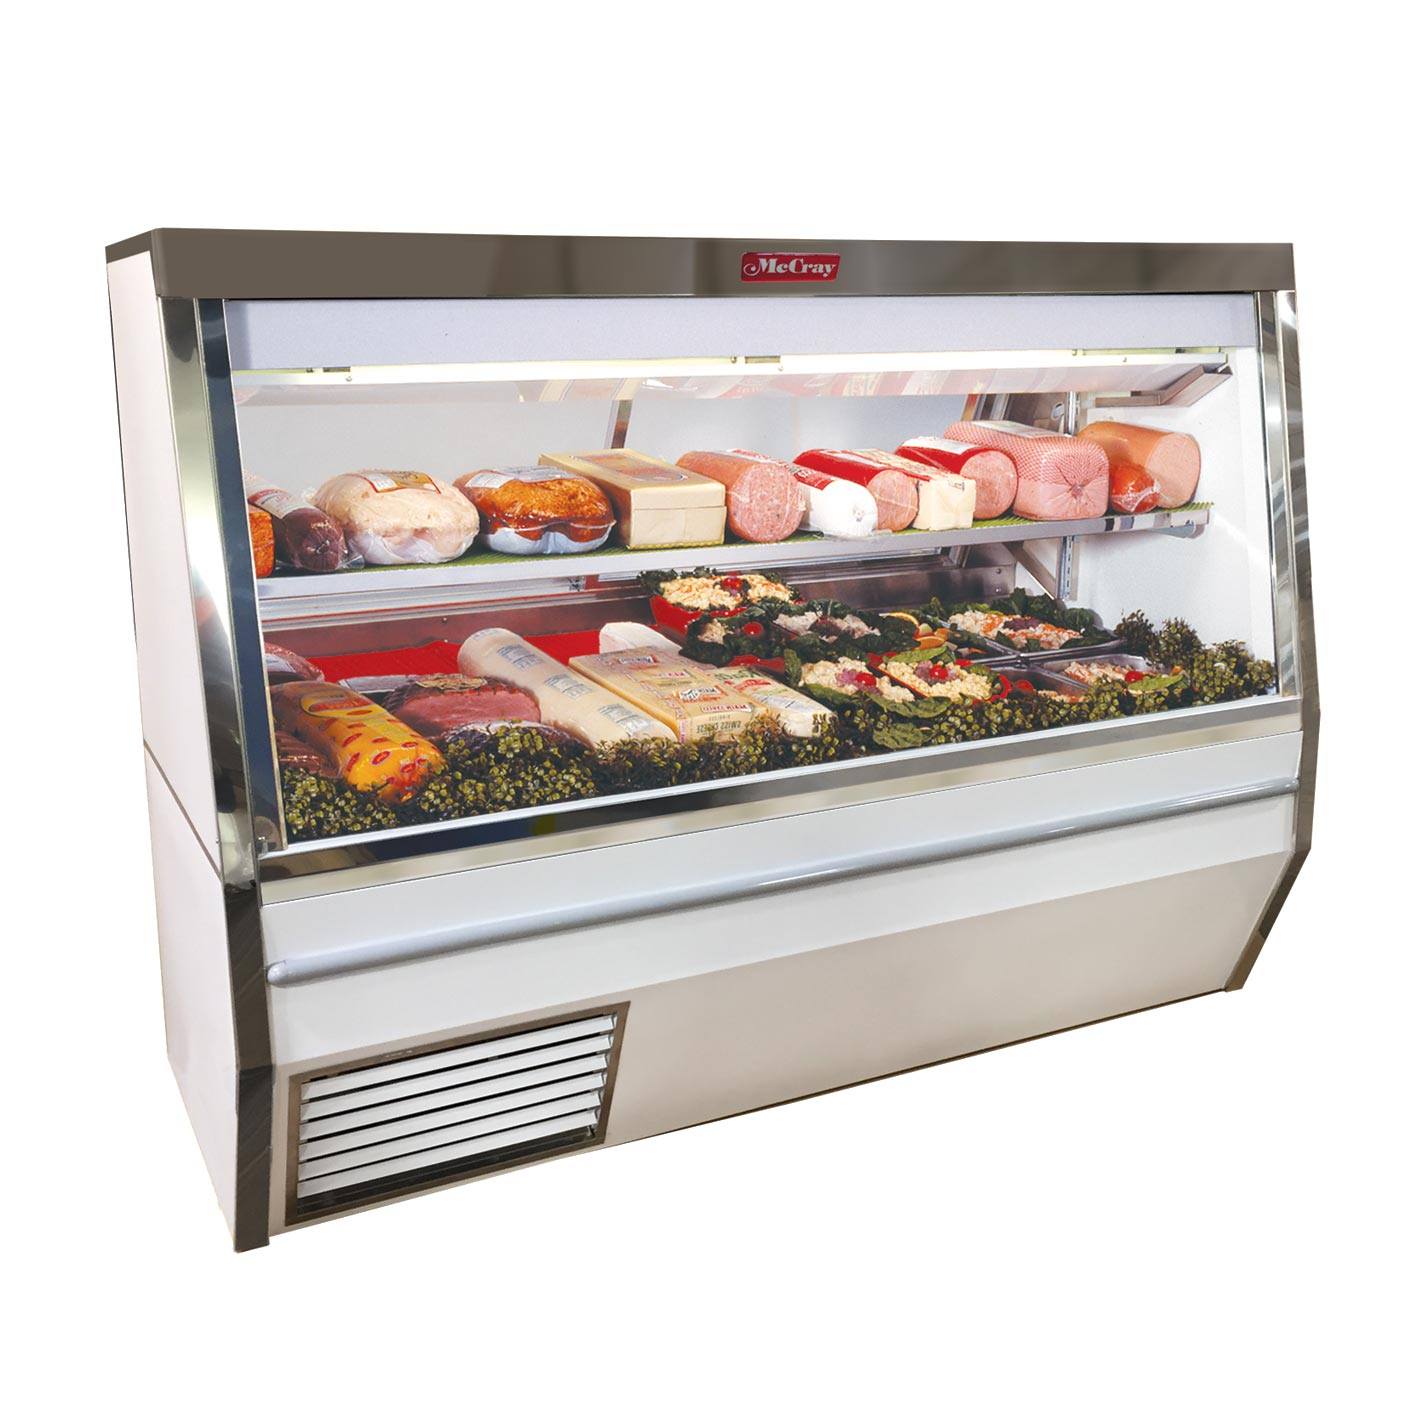 Howard-McCray R-CDS34N-10-BE-LED display case, refrigerated deli